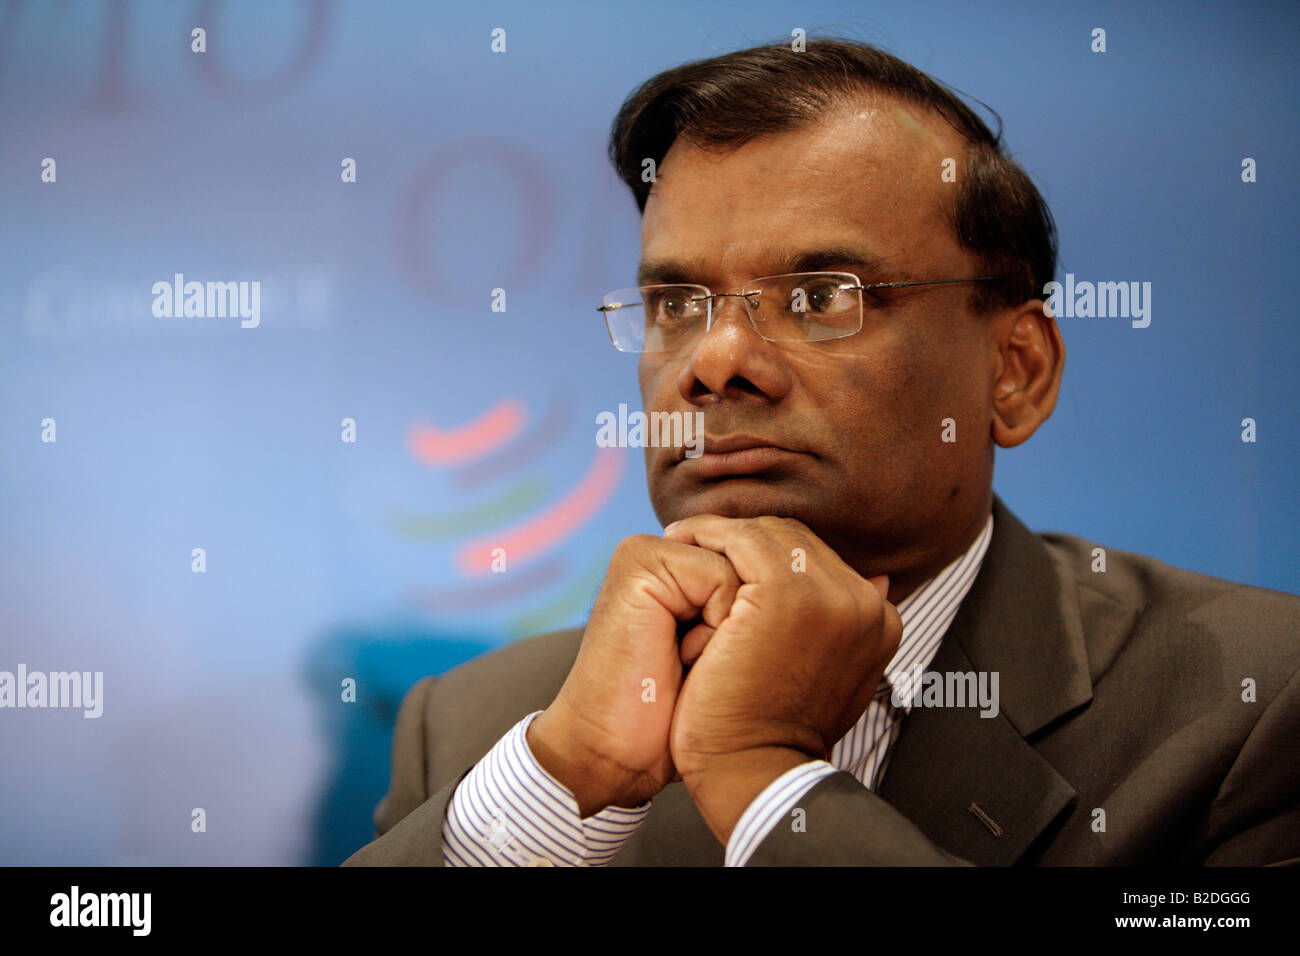 Ramakrishna Sithanen - Deputy Prime Minister,  Minister of Finance and Economic Development of Republic of Mauritius. Stock Photo